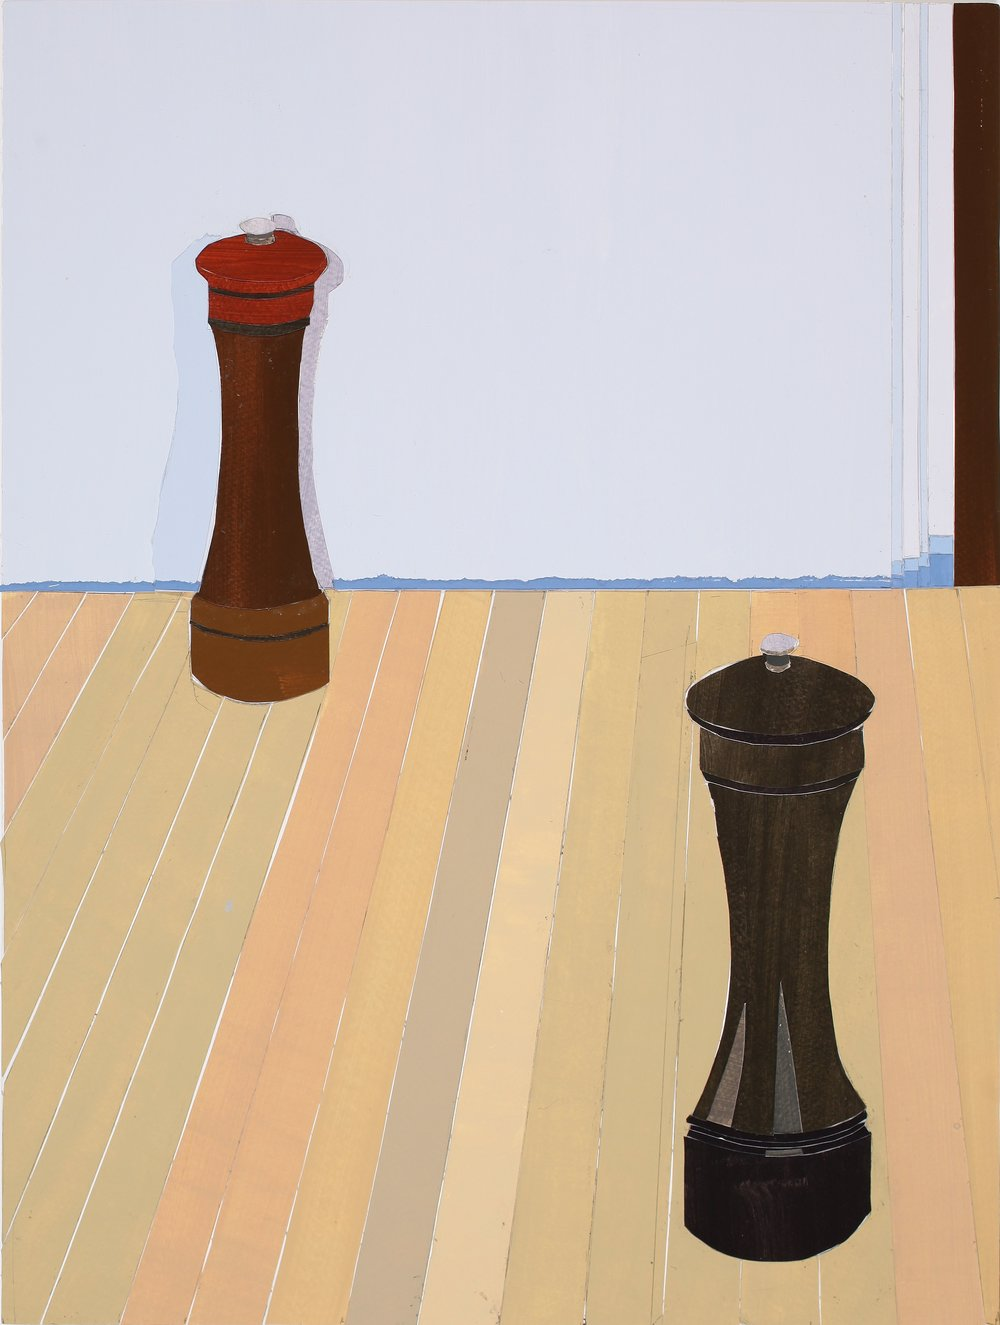 Salt and Pepper, mixed media on board, 47.5 x 36cm, 2011